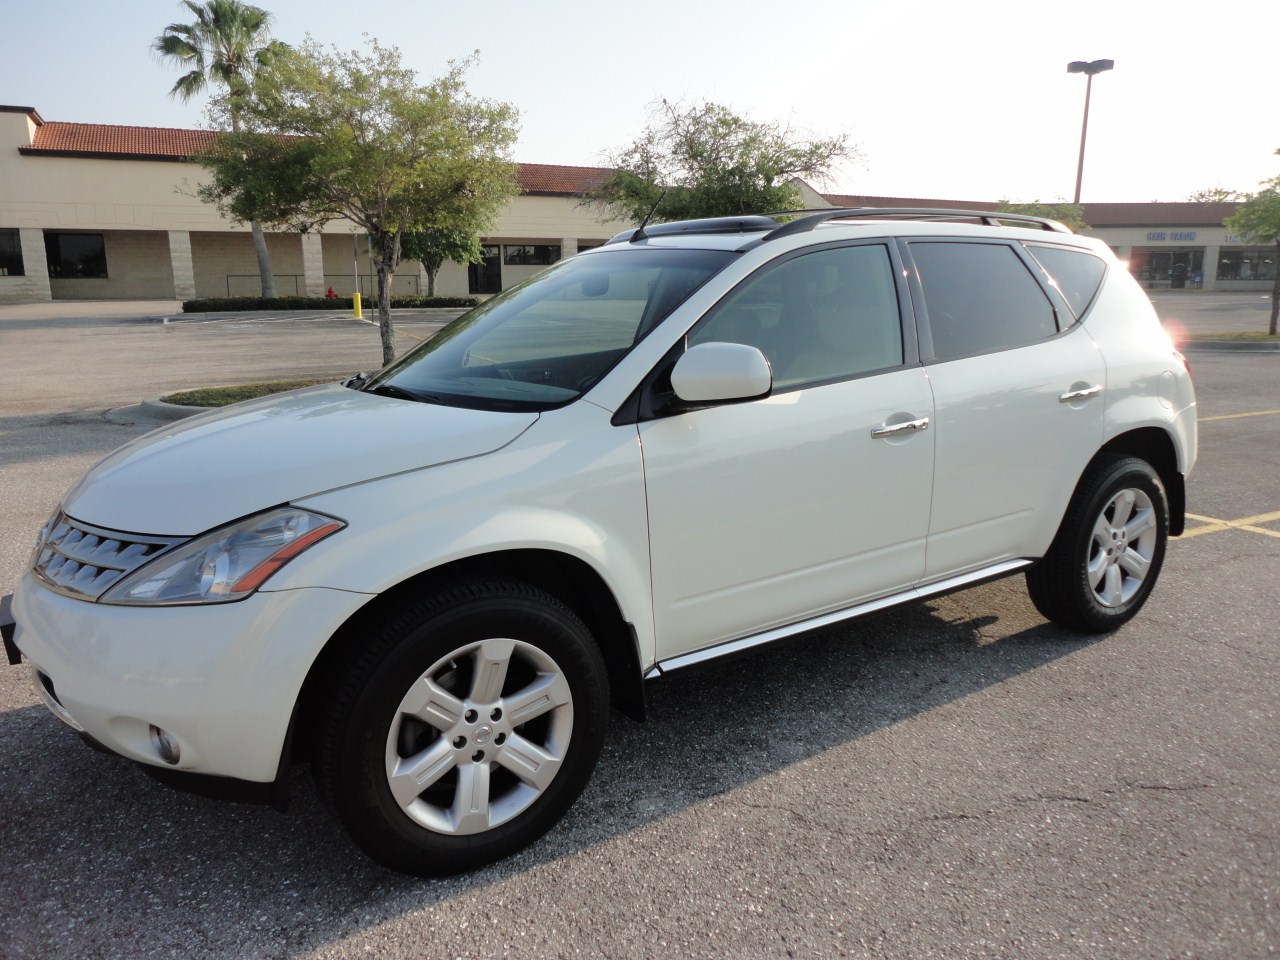 Pin 2007 Nissan Murano Price Image Search Results On Pinterest